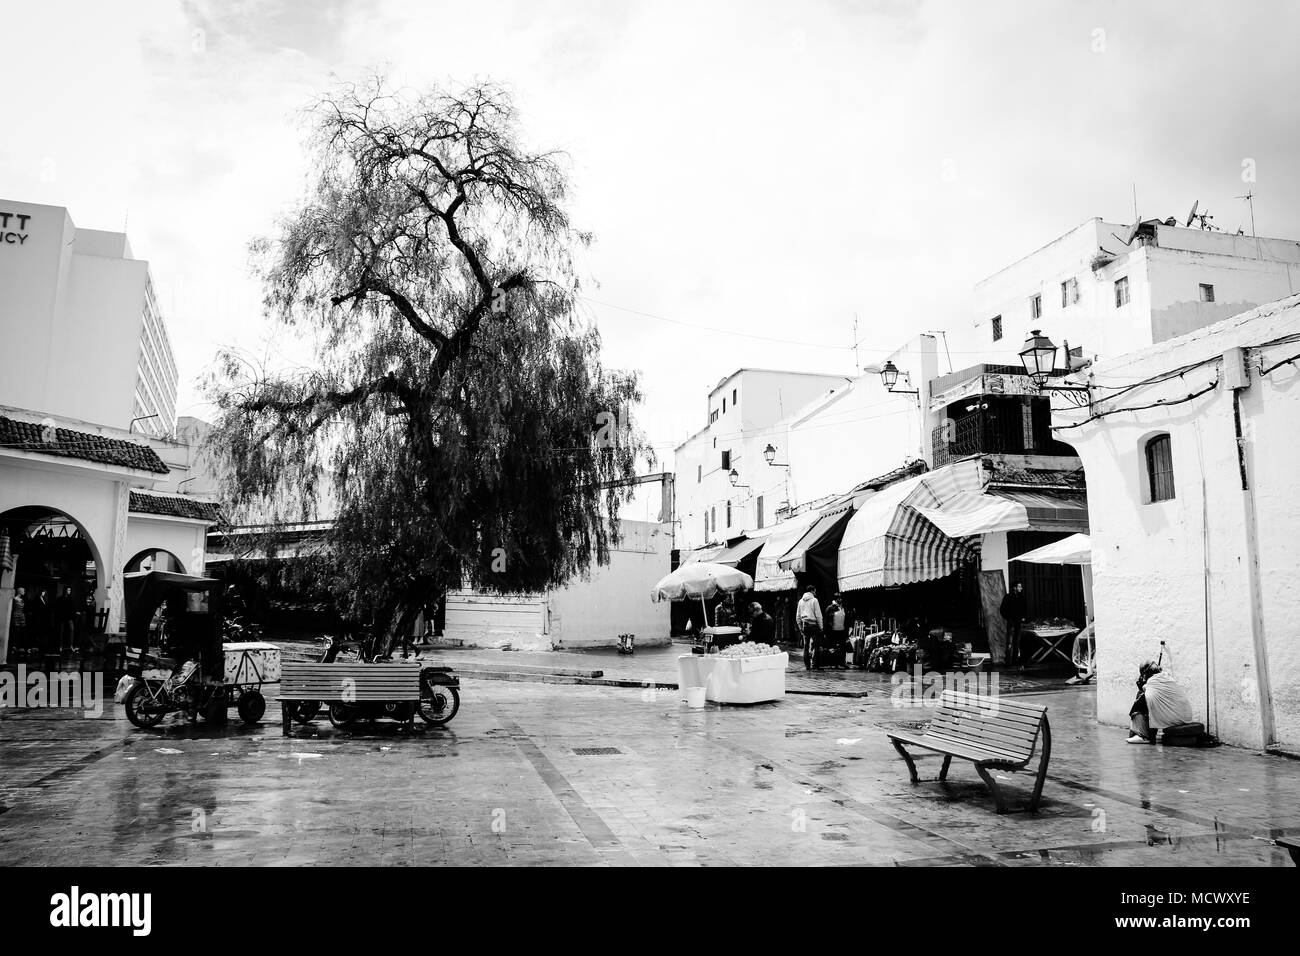 Old fashioned black and white picture of market stalls having vegetables on sale at the entrance of the old souk in Casablanca, Morocco - Stock Image